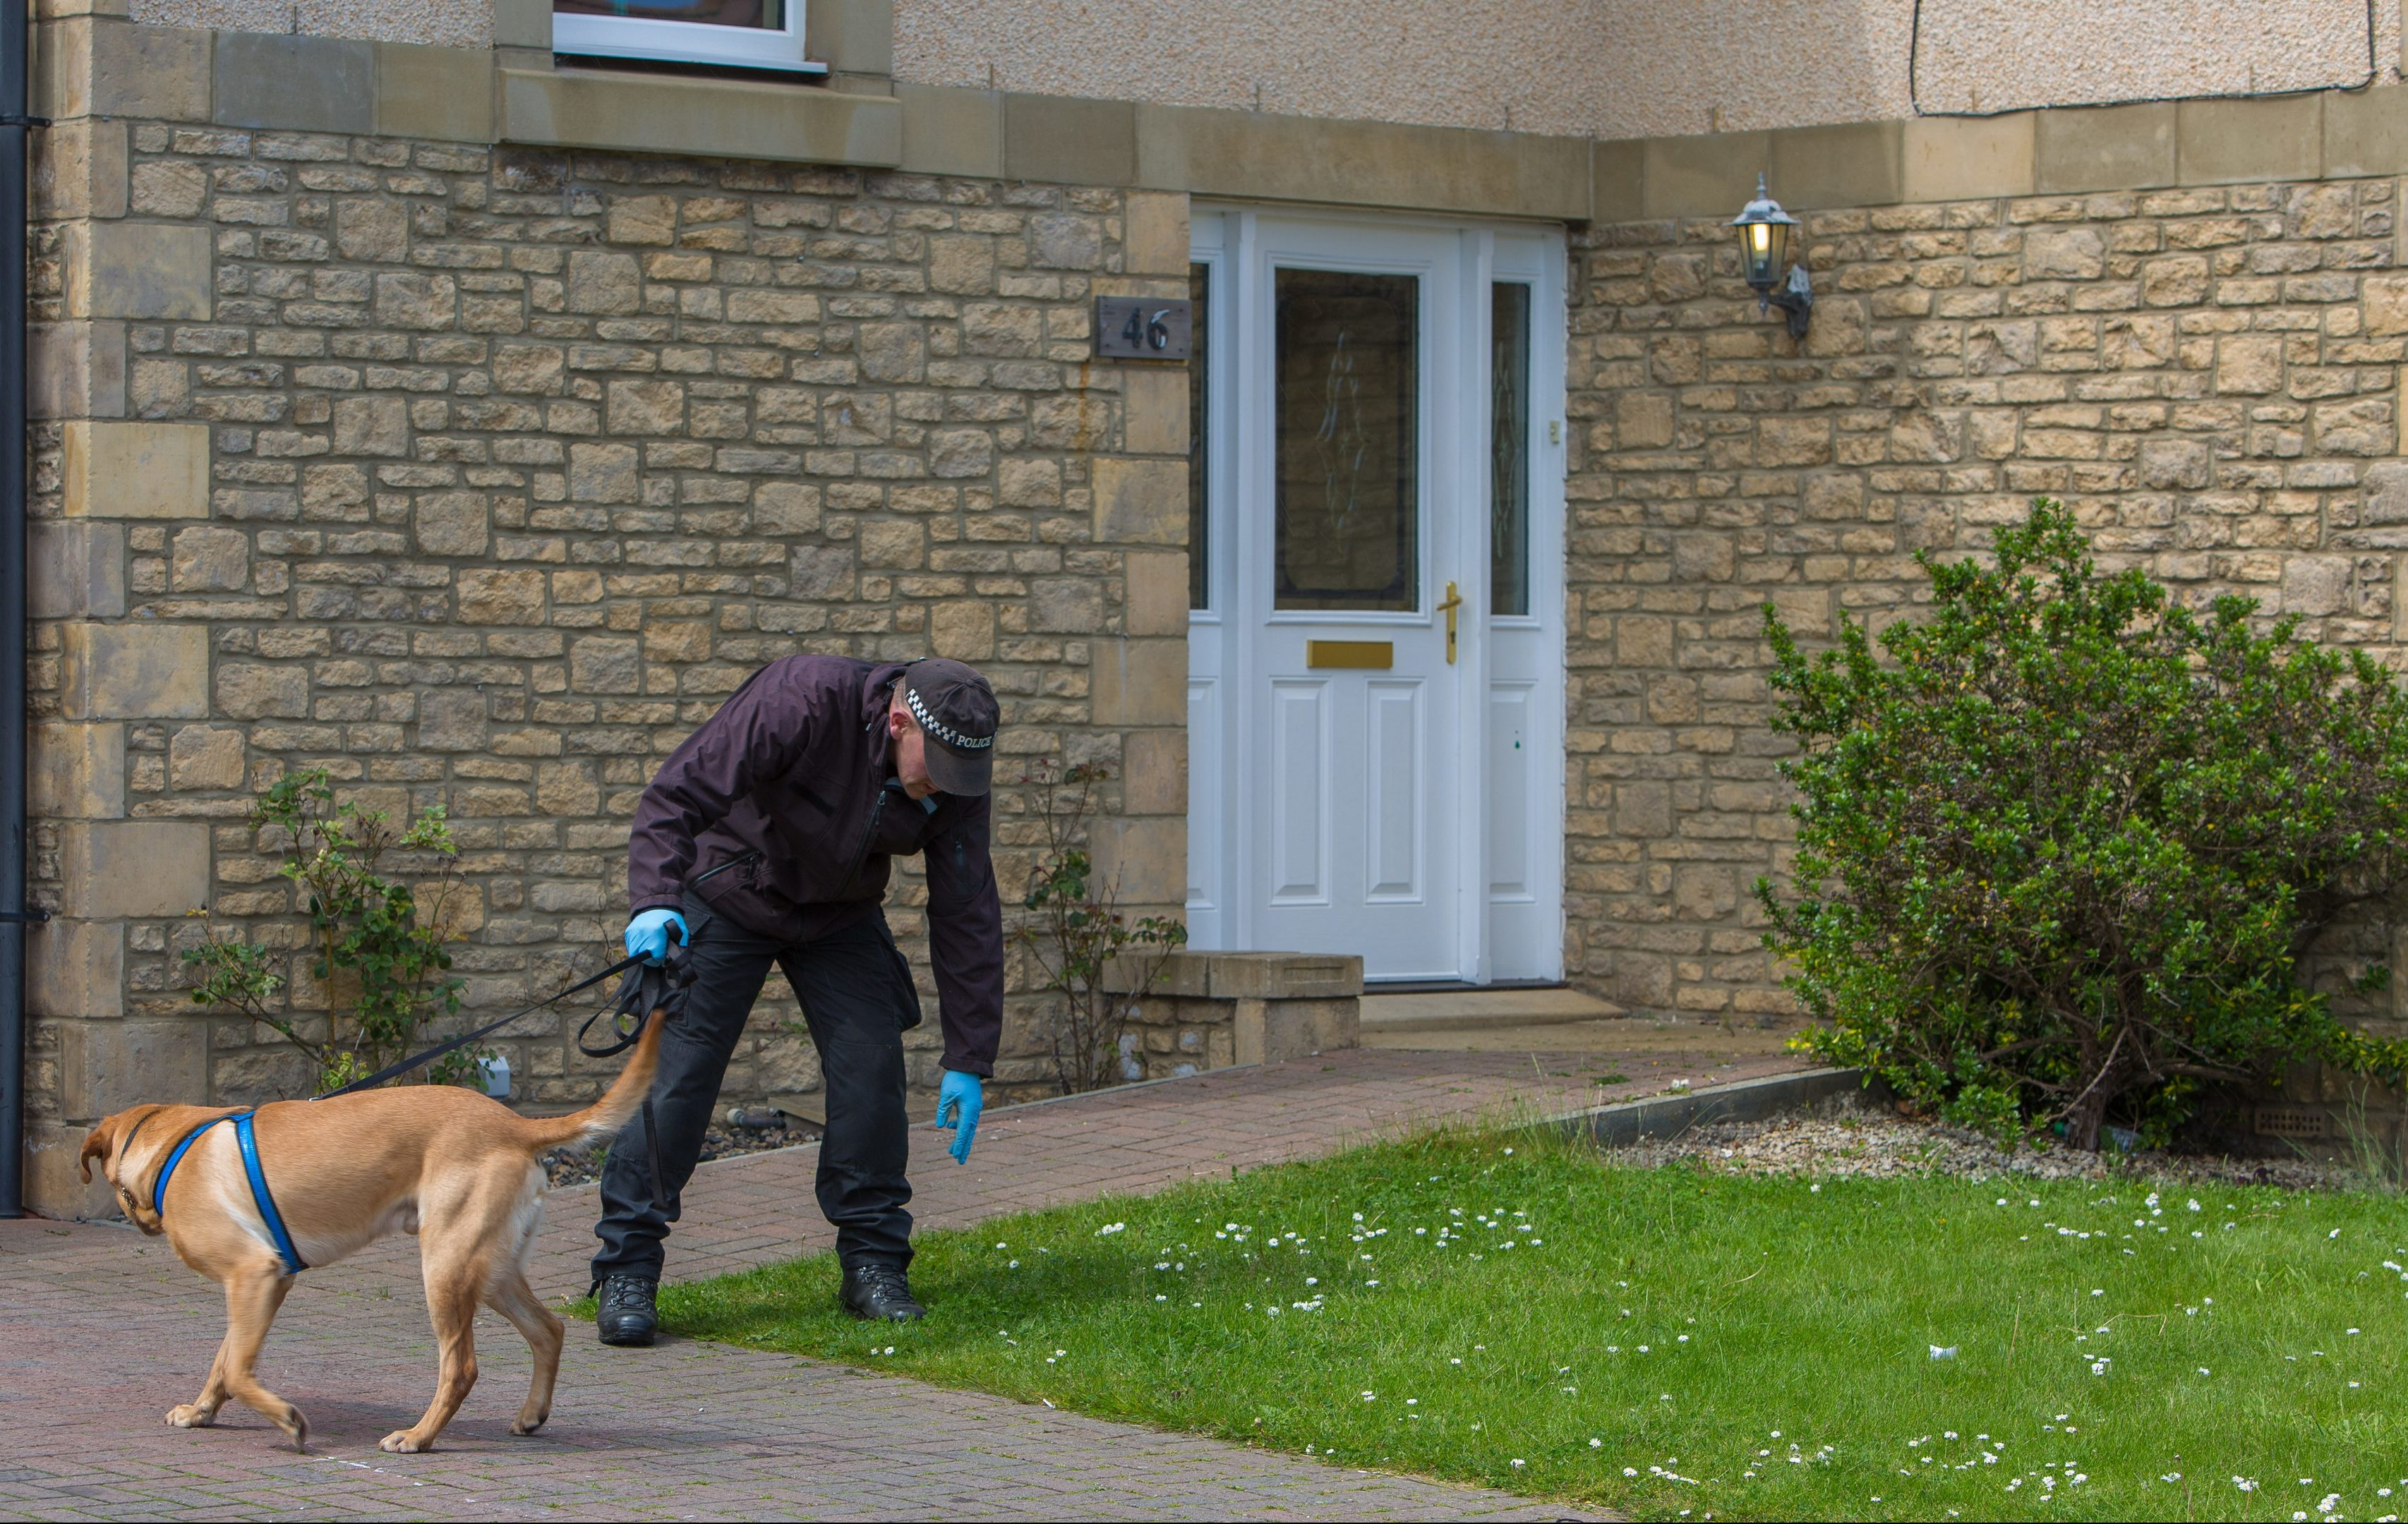 Bullet holes were visible in the front door of the property as a sniffer dog looked for clues in the garden the day after the incident.